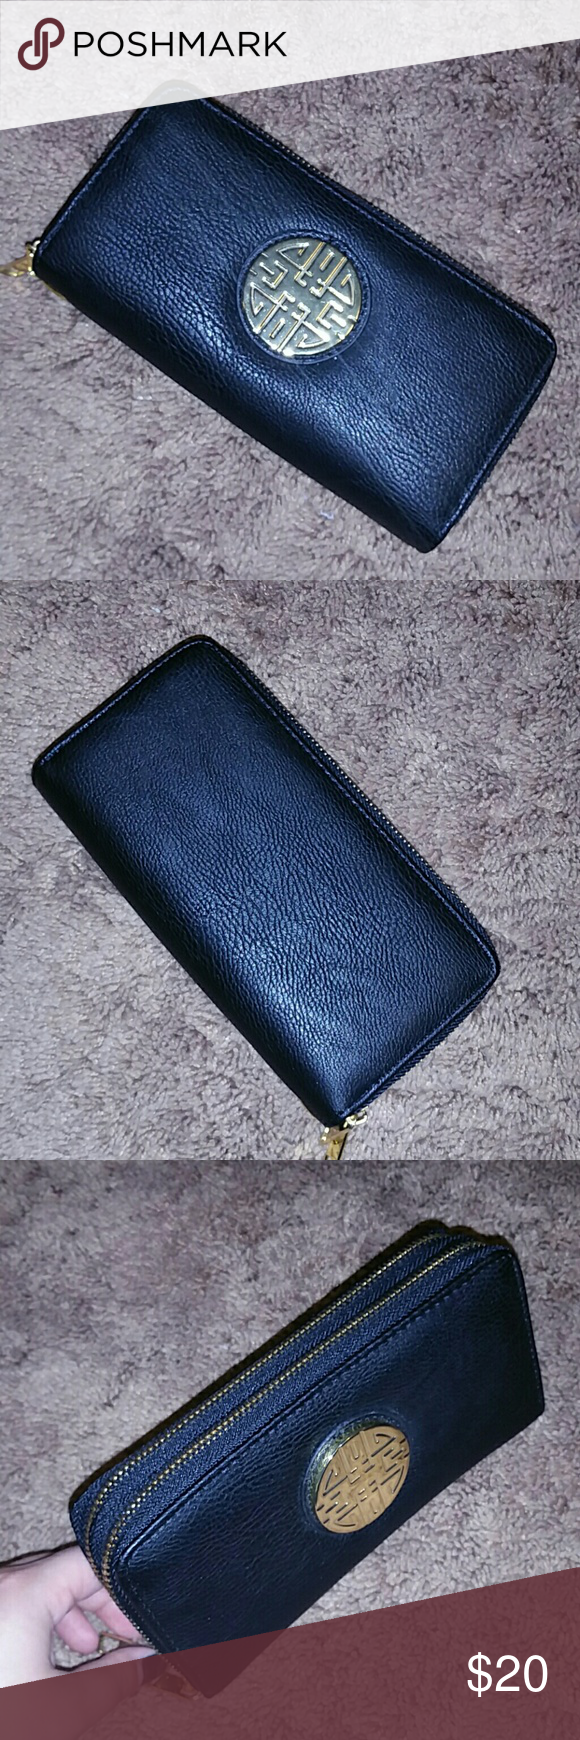 NEVER USED Black Wallet Multiple card slots. Big enough to fit a Galaxy Note 4/ iPhone s6 plus. Bags Wallets